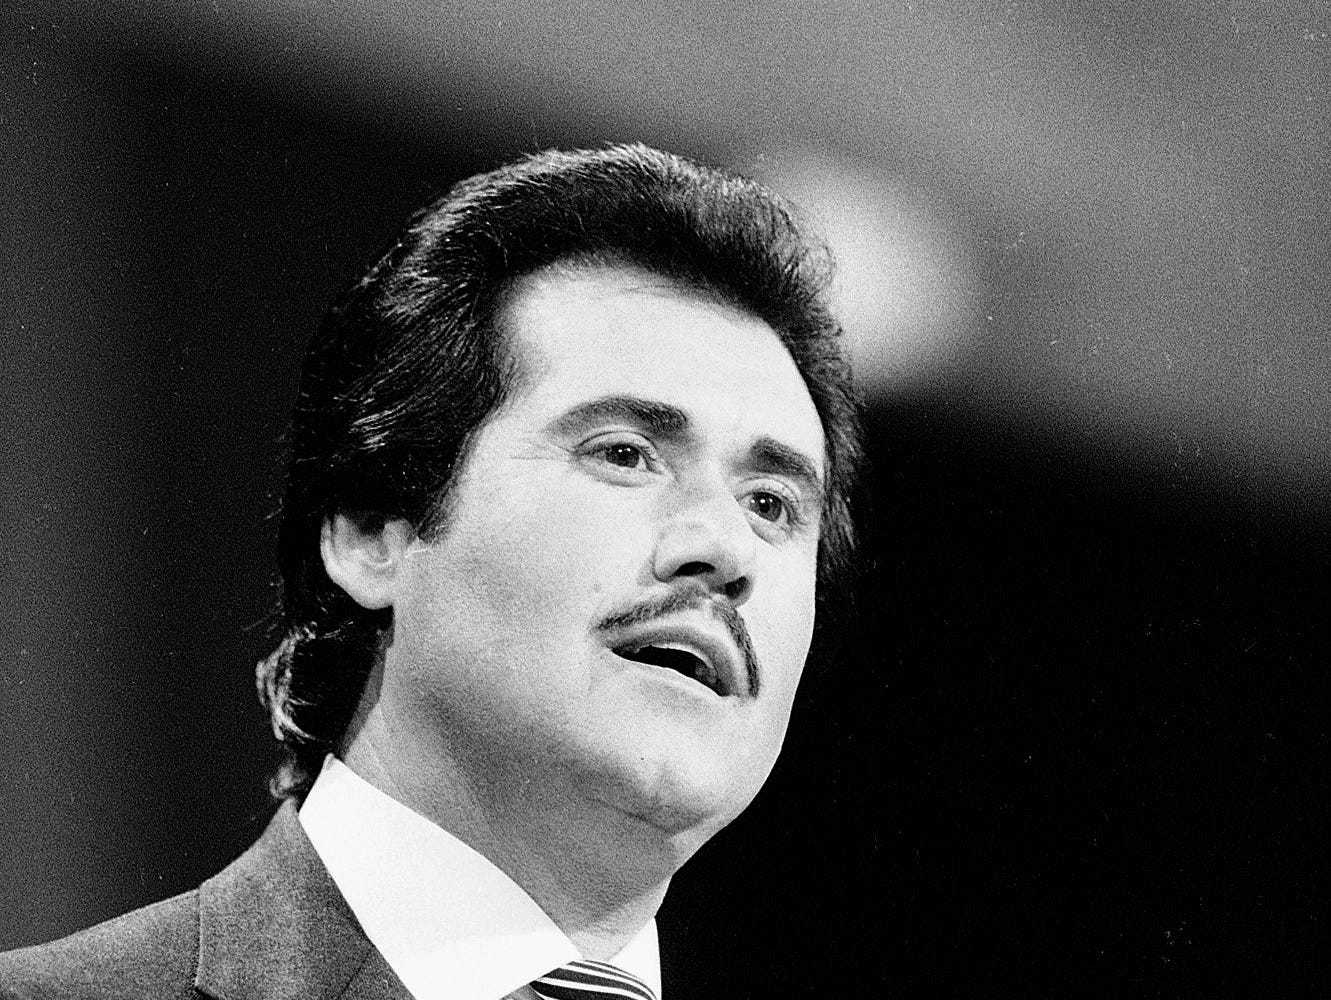 Wayne Newton sings the National Anthem to open the Republican National Convention in Dallas on Aug. 22, 1984.